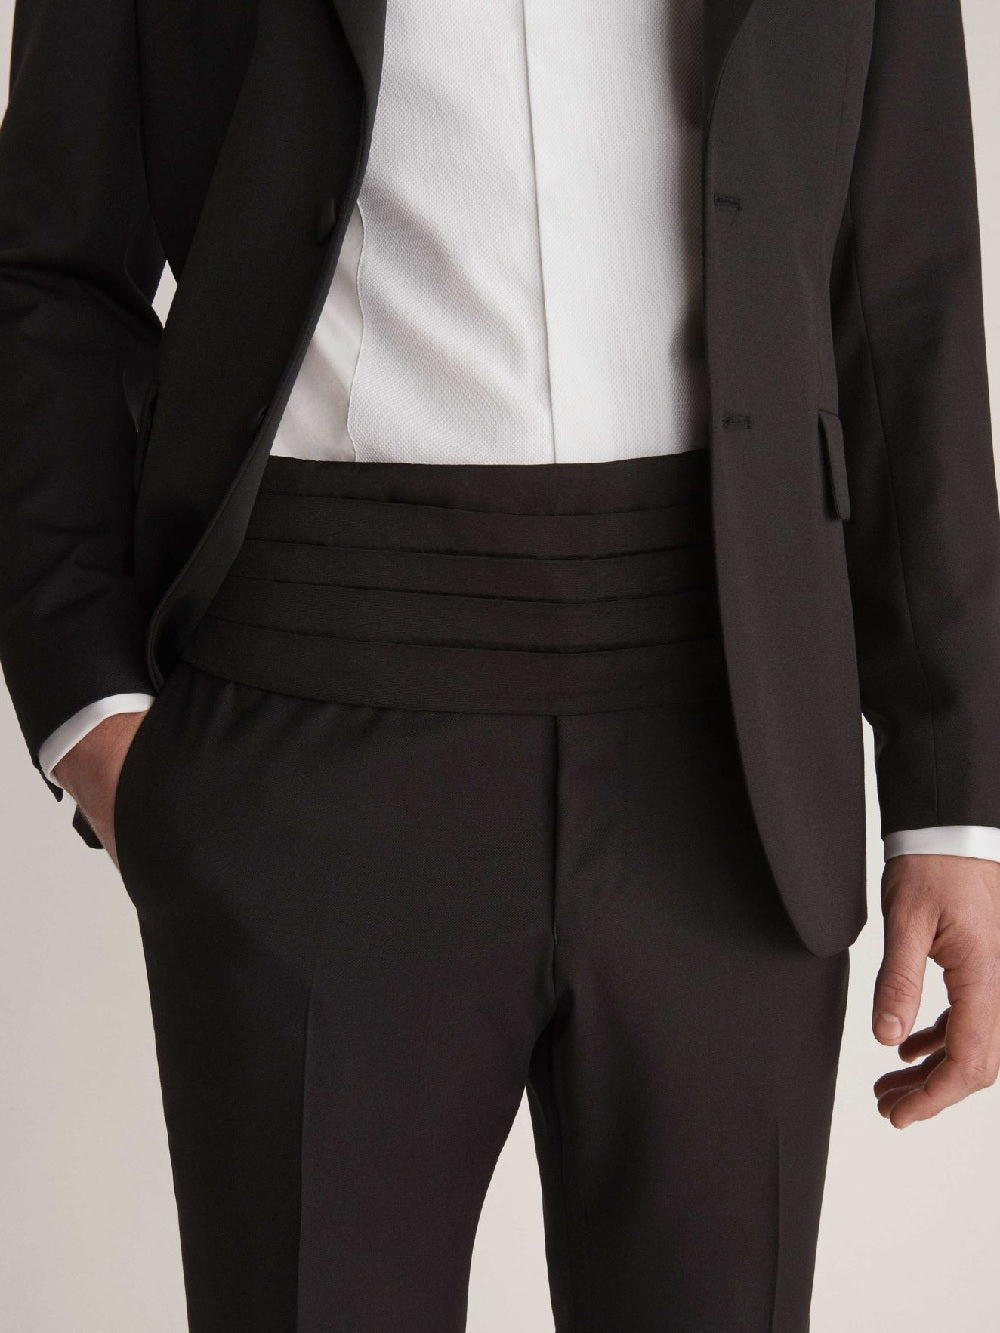 Mens Wedding Suits For Men - Black Cummberbund